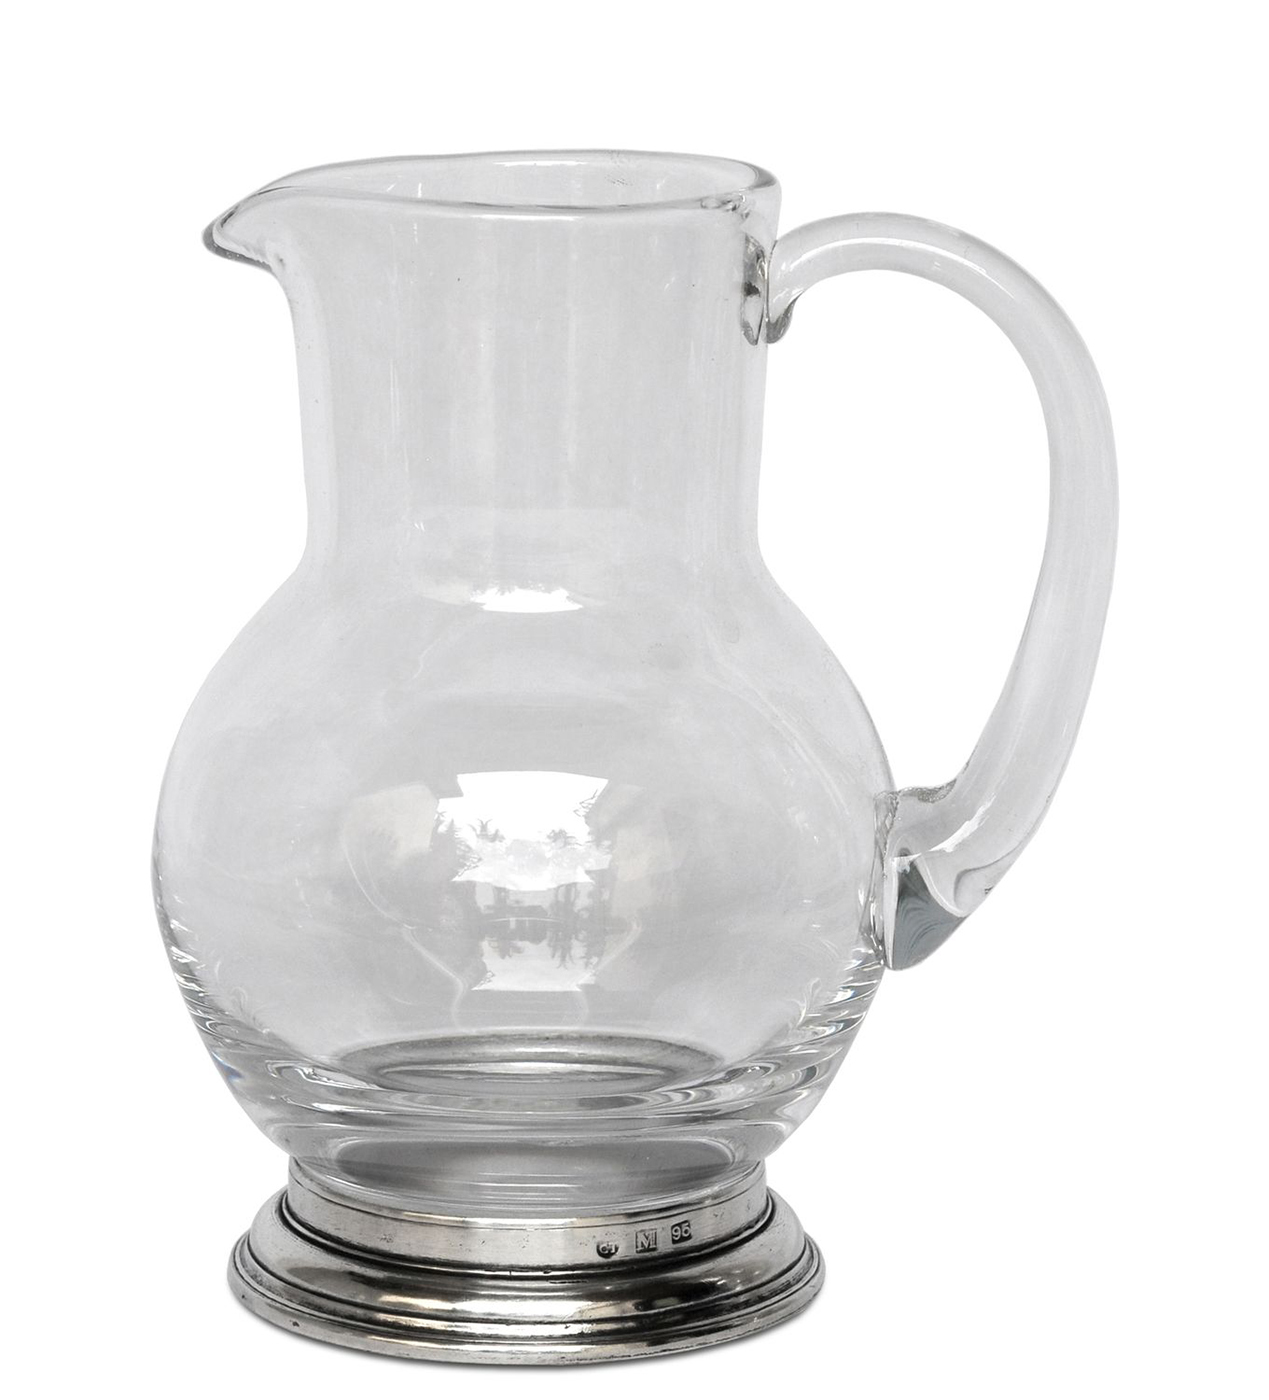 1 2 liter glass pitcher by match pewter. Black Bedroom Furniture Sets. Home Design Ideas